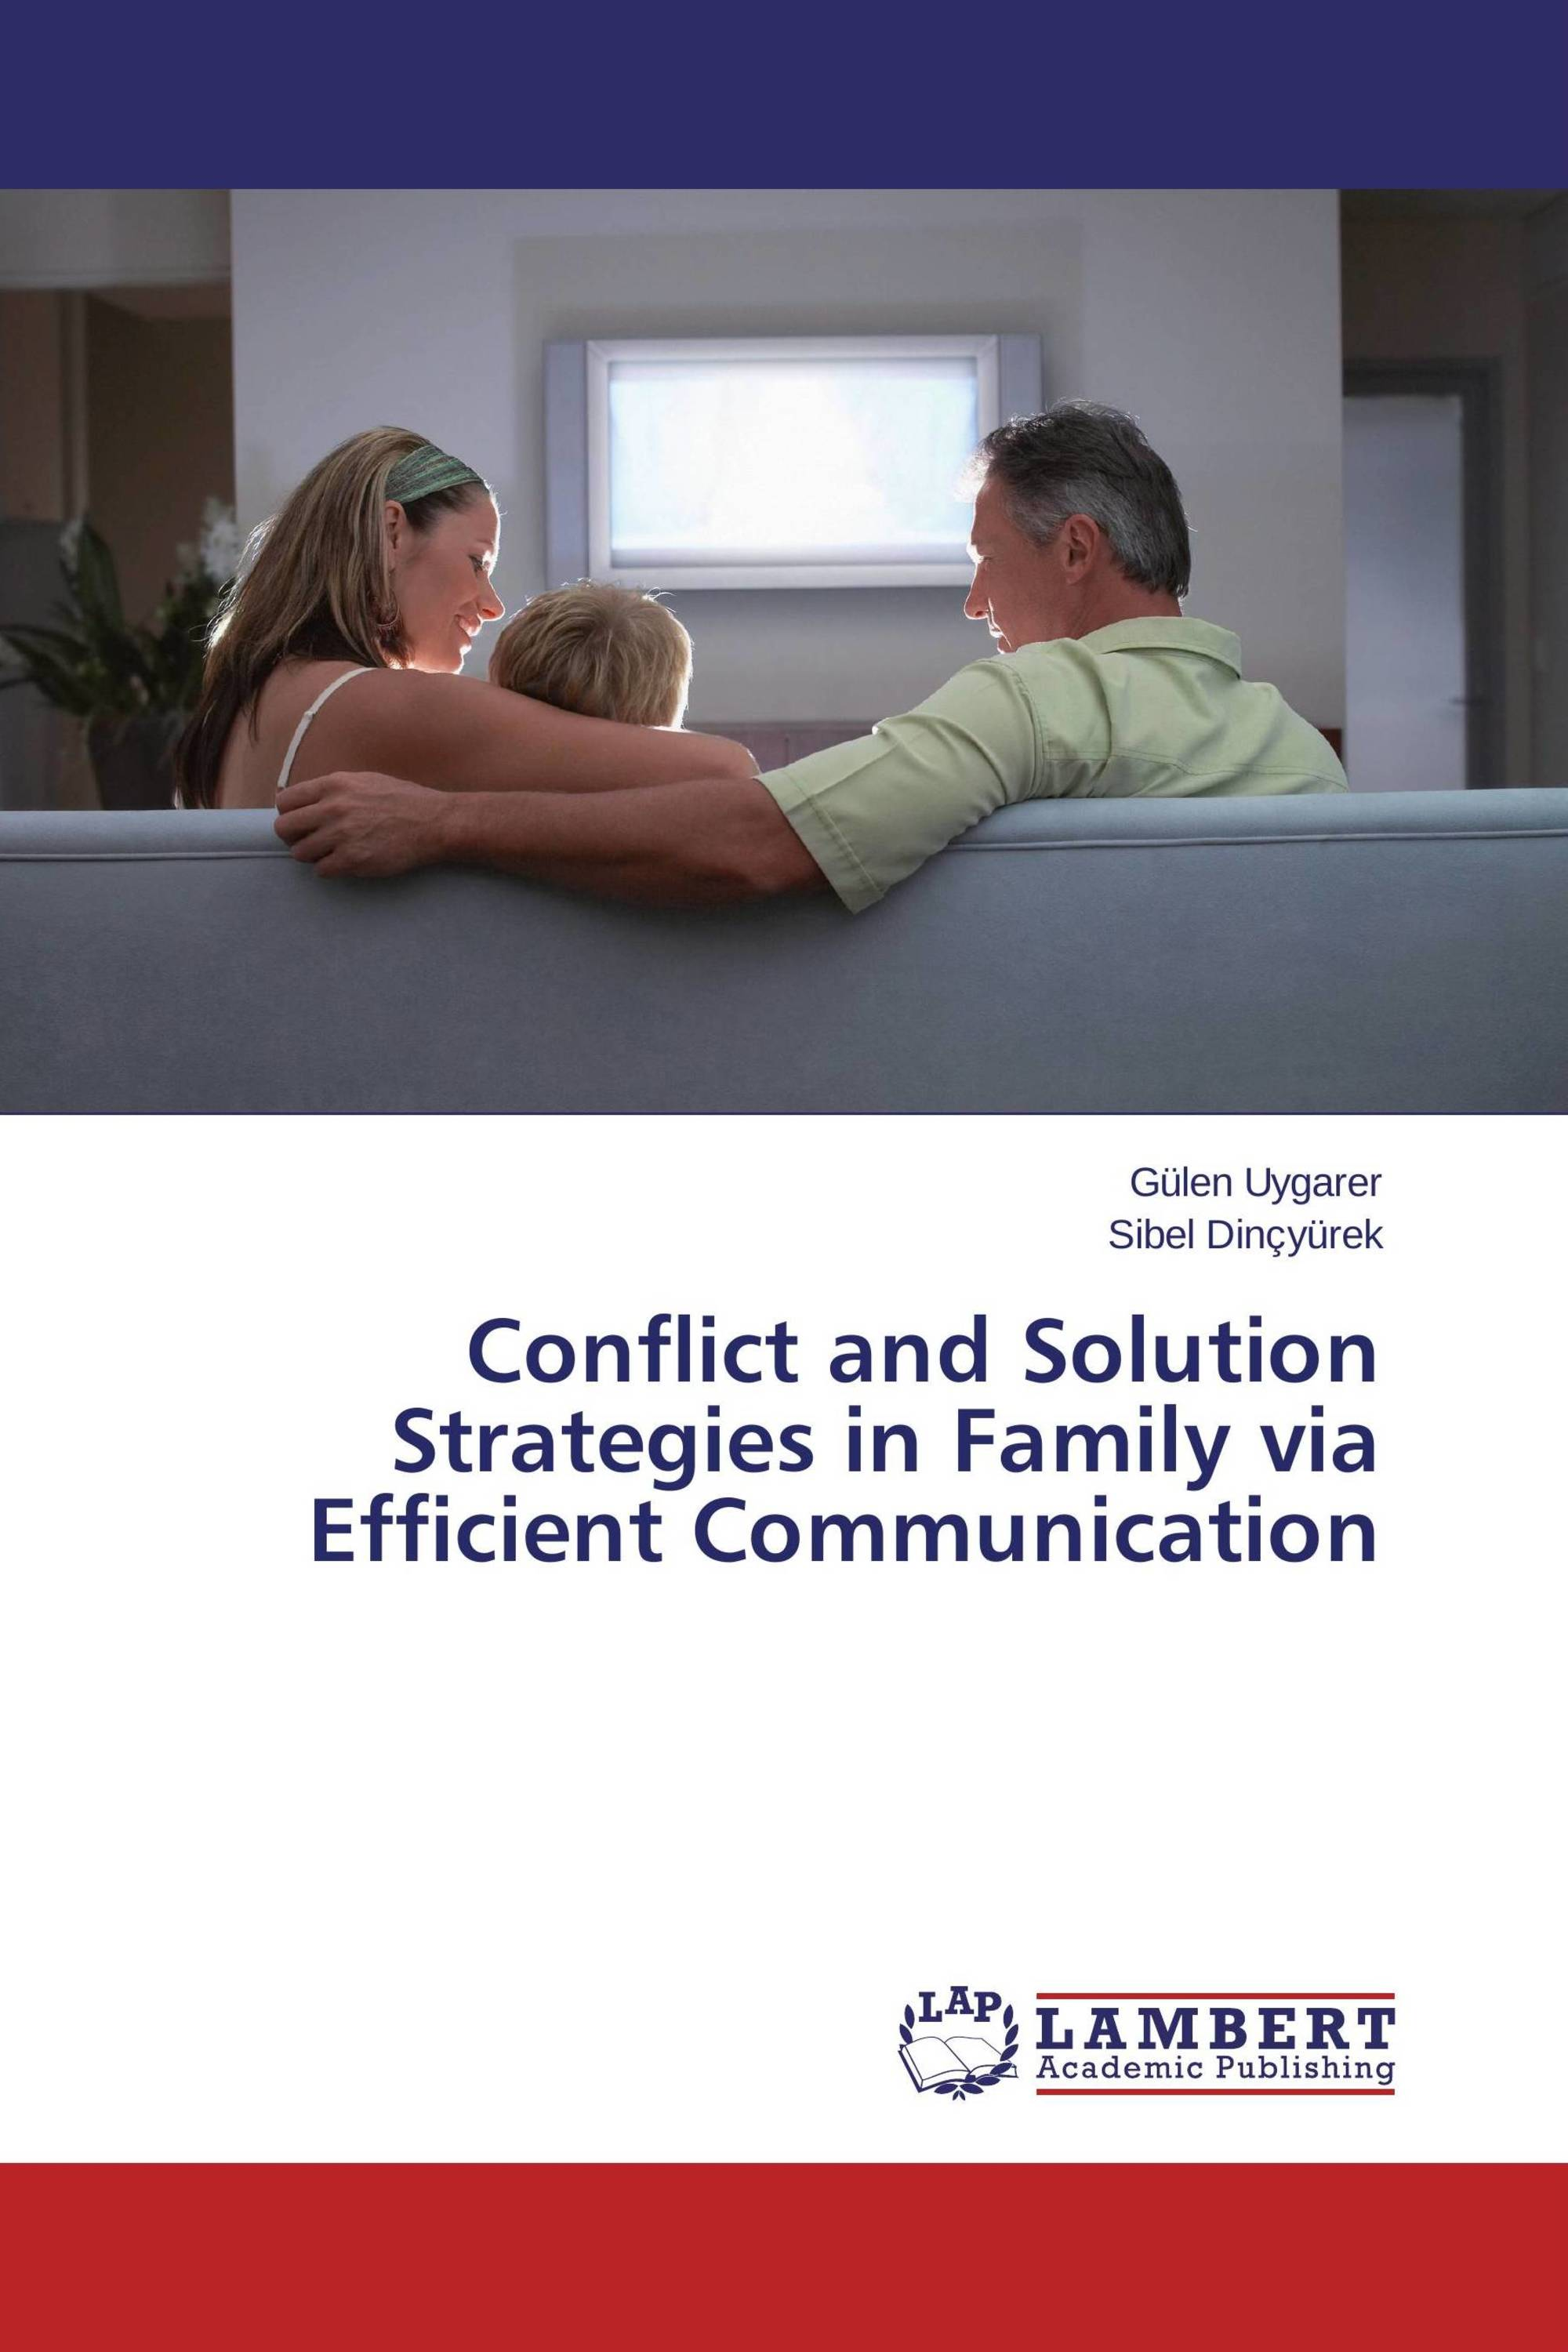 Conflict and Solution Strategies in Family via Efficient Communication